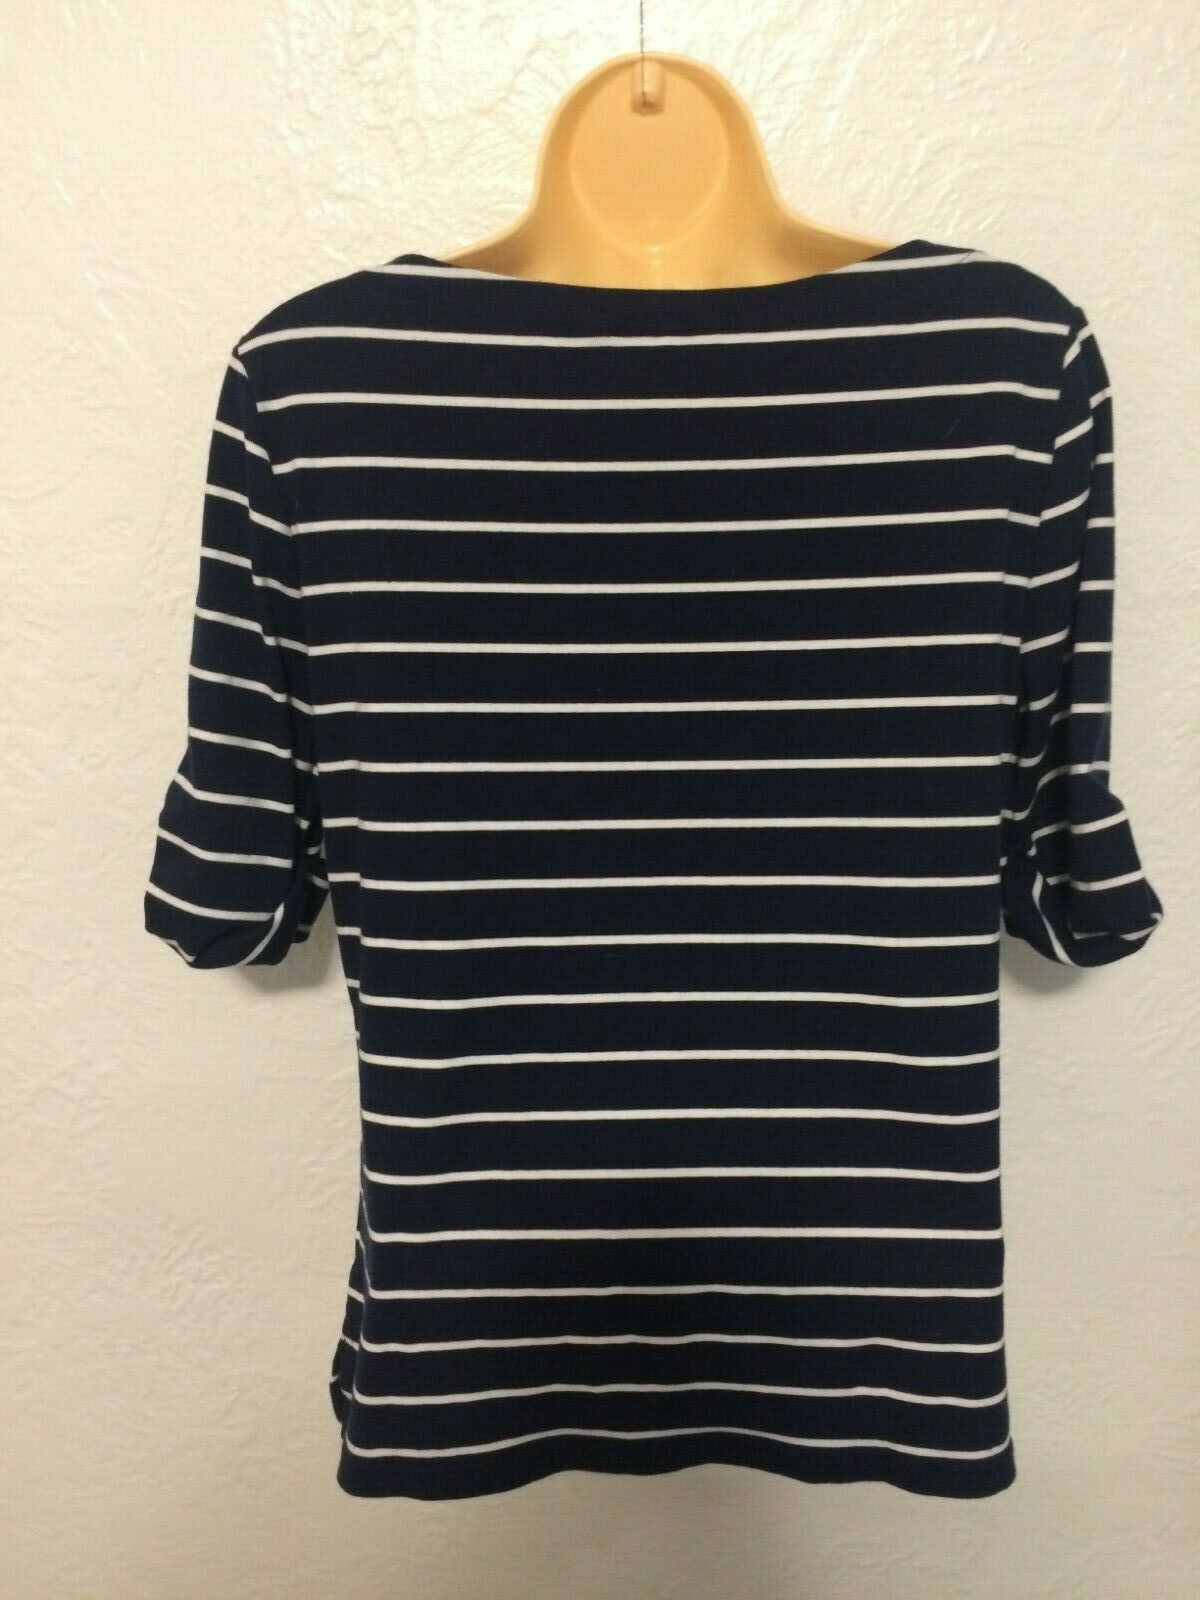 Ralph Lauren Womens size Large striped top